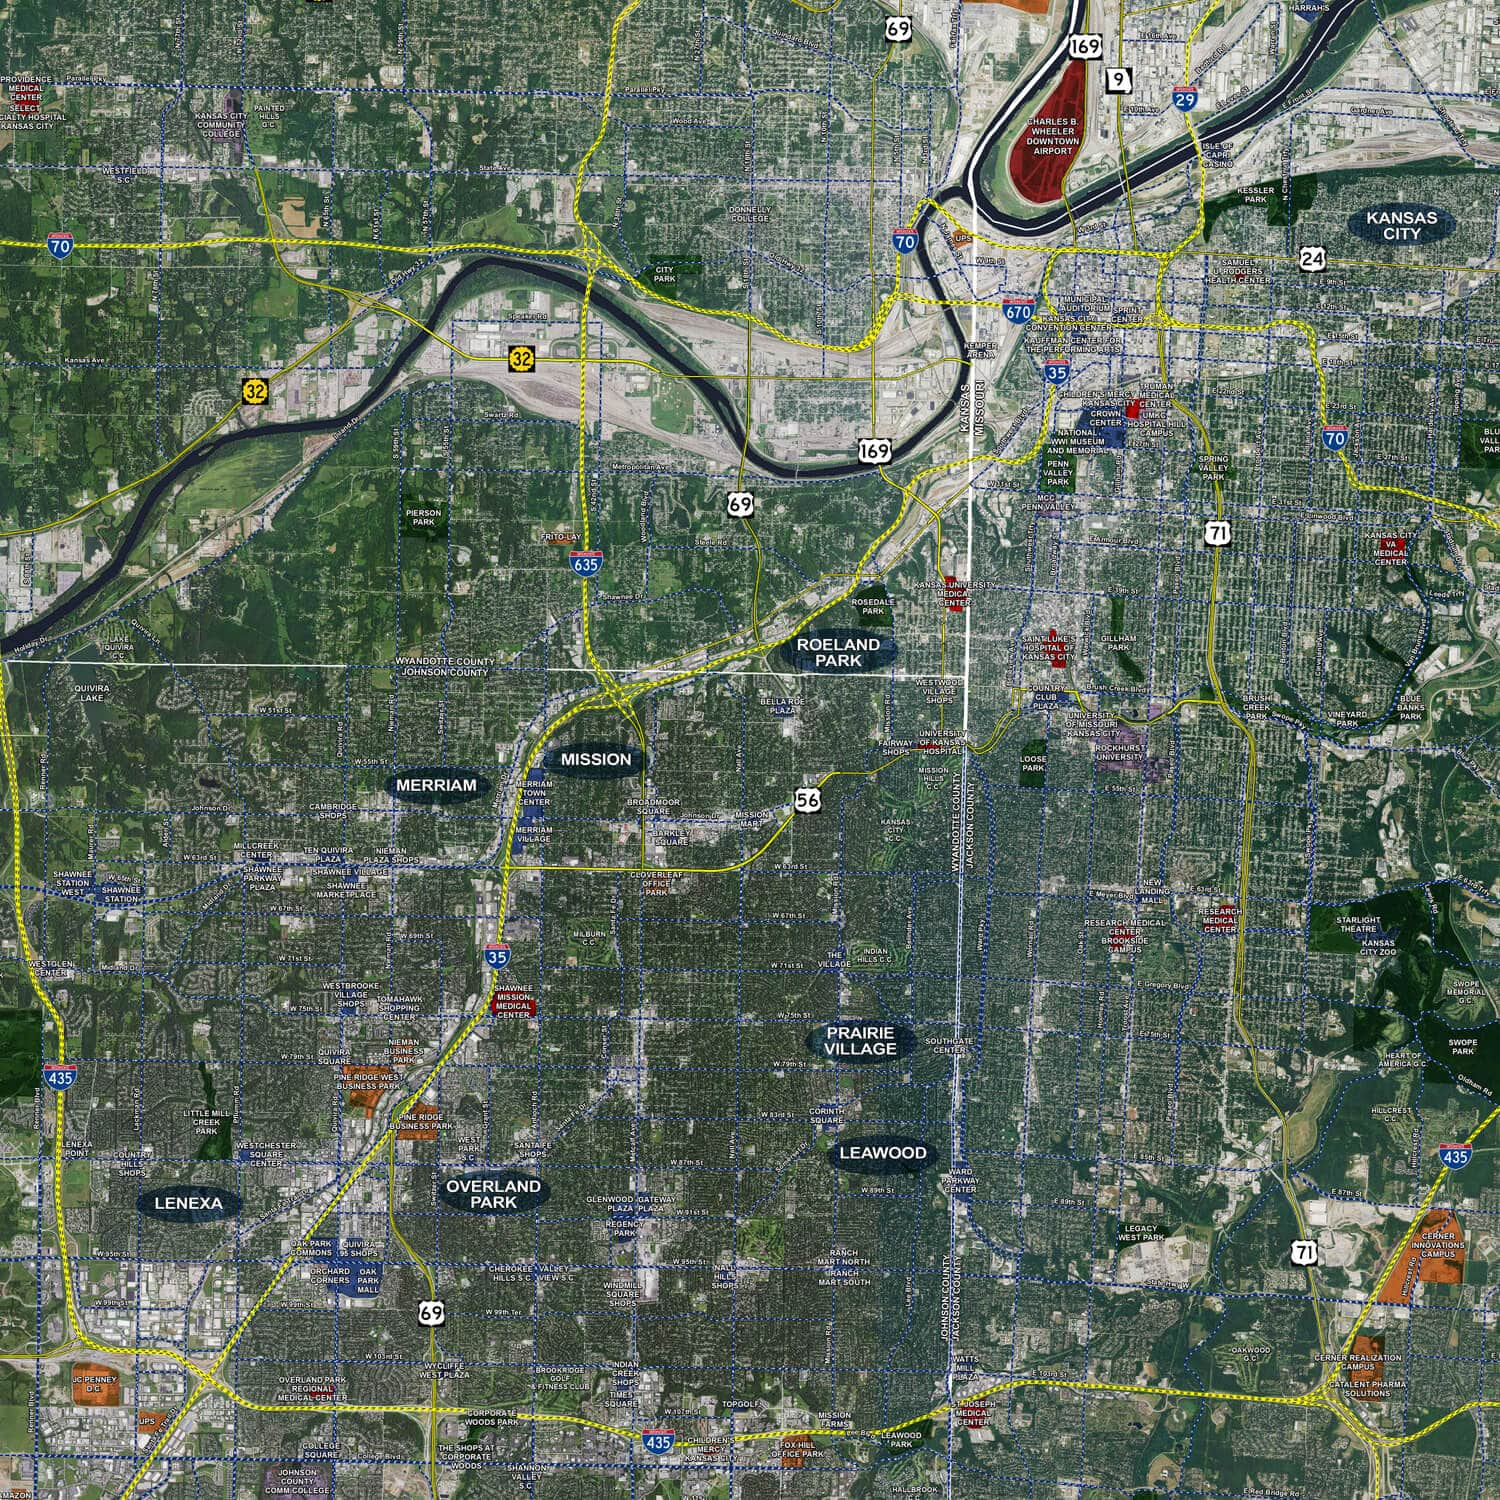 Kansas City Rolled Aerial Map Landiscor Real Estate Mapping - Kansas city map